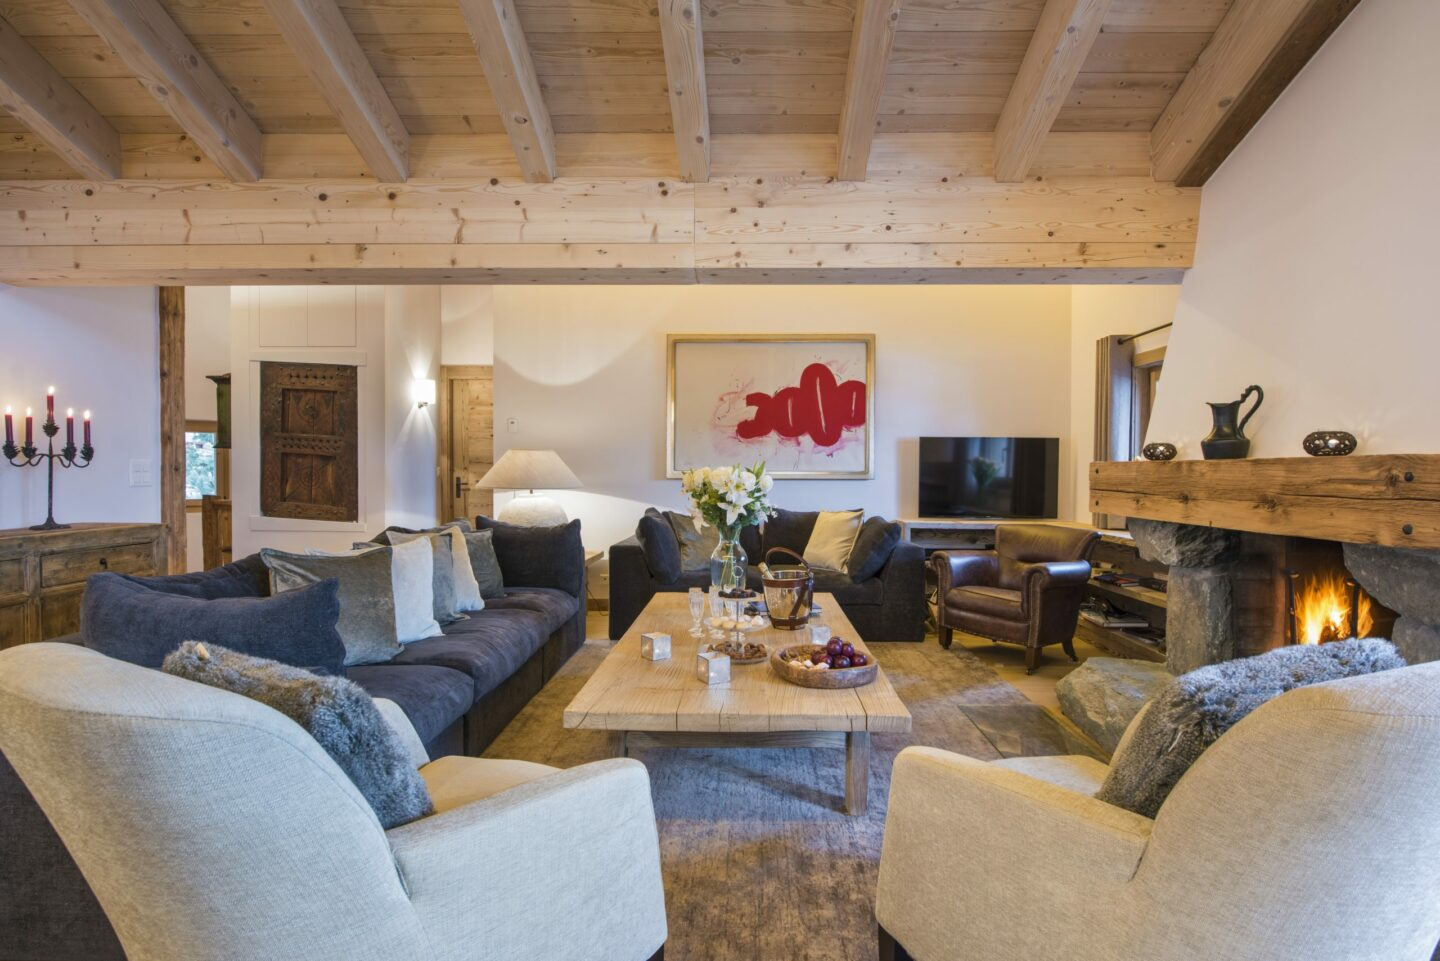 Lounge and open fire at Chalet Delormes in Verbier